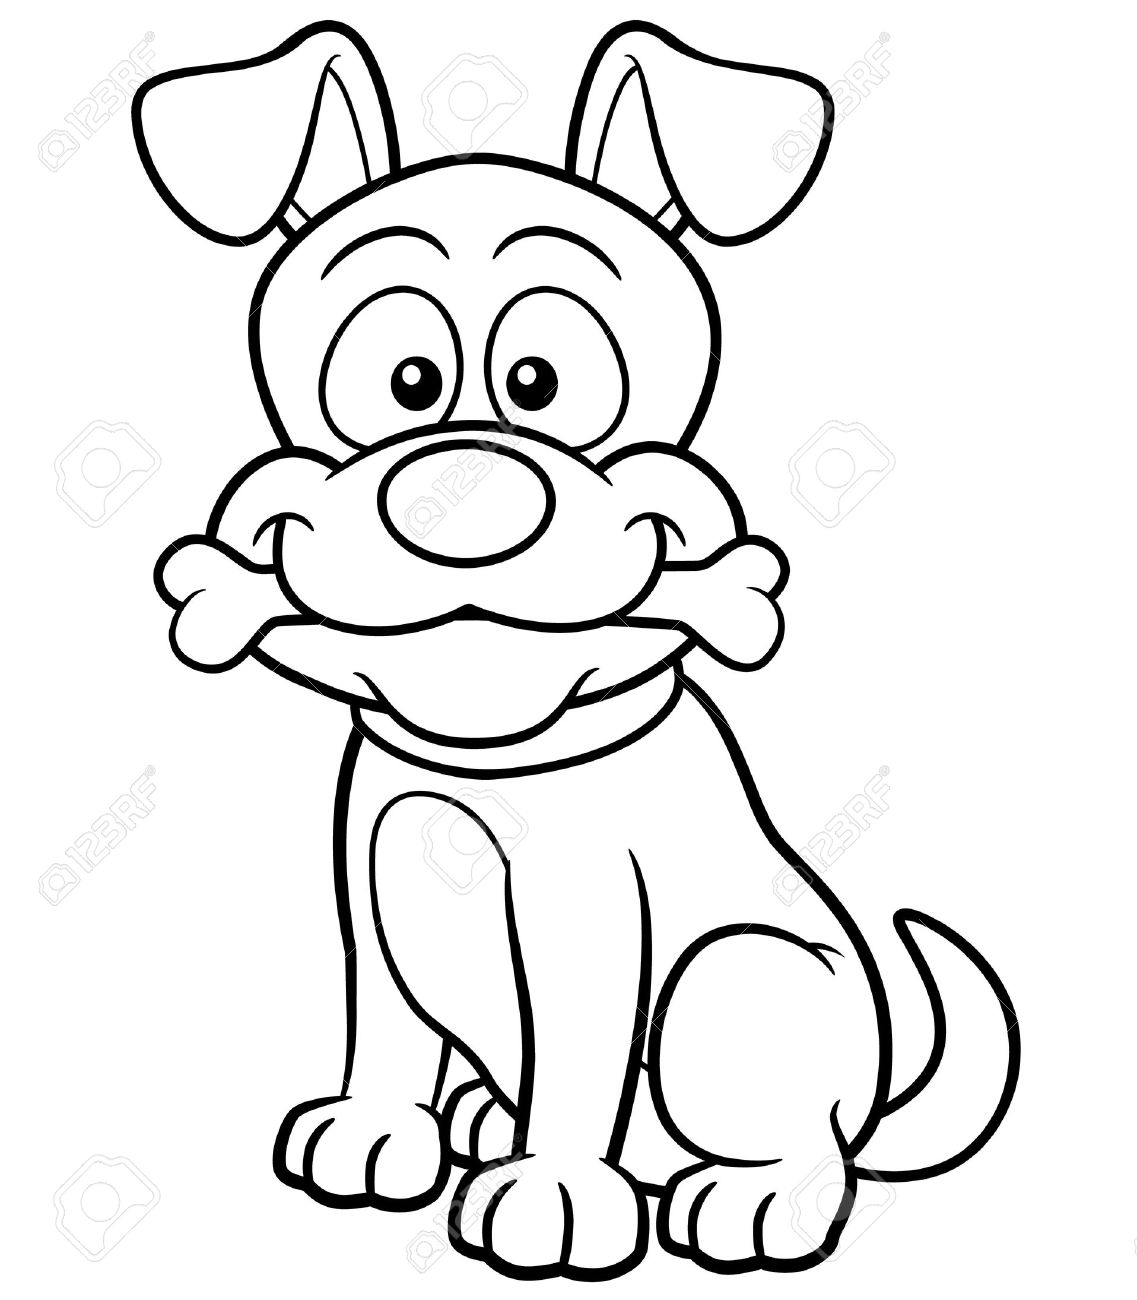 Vector illustration of Cartoon Dog - Coloring book